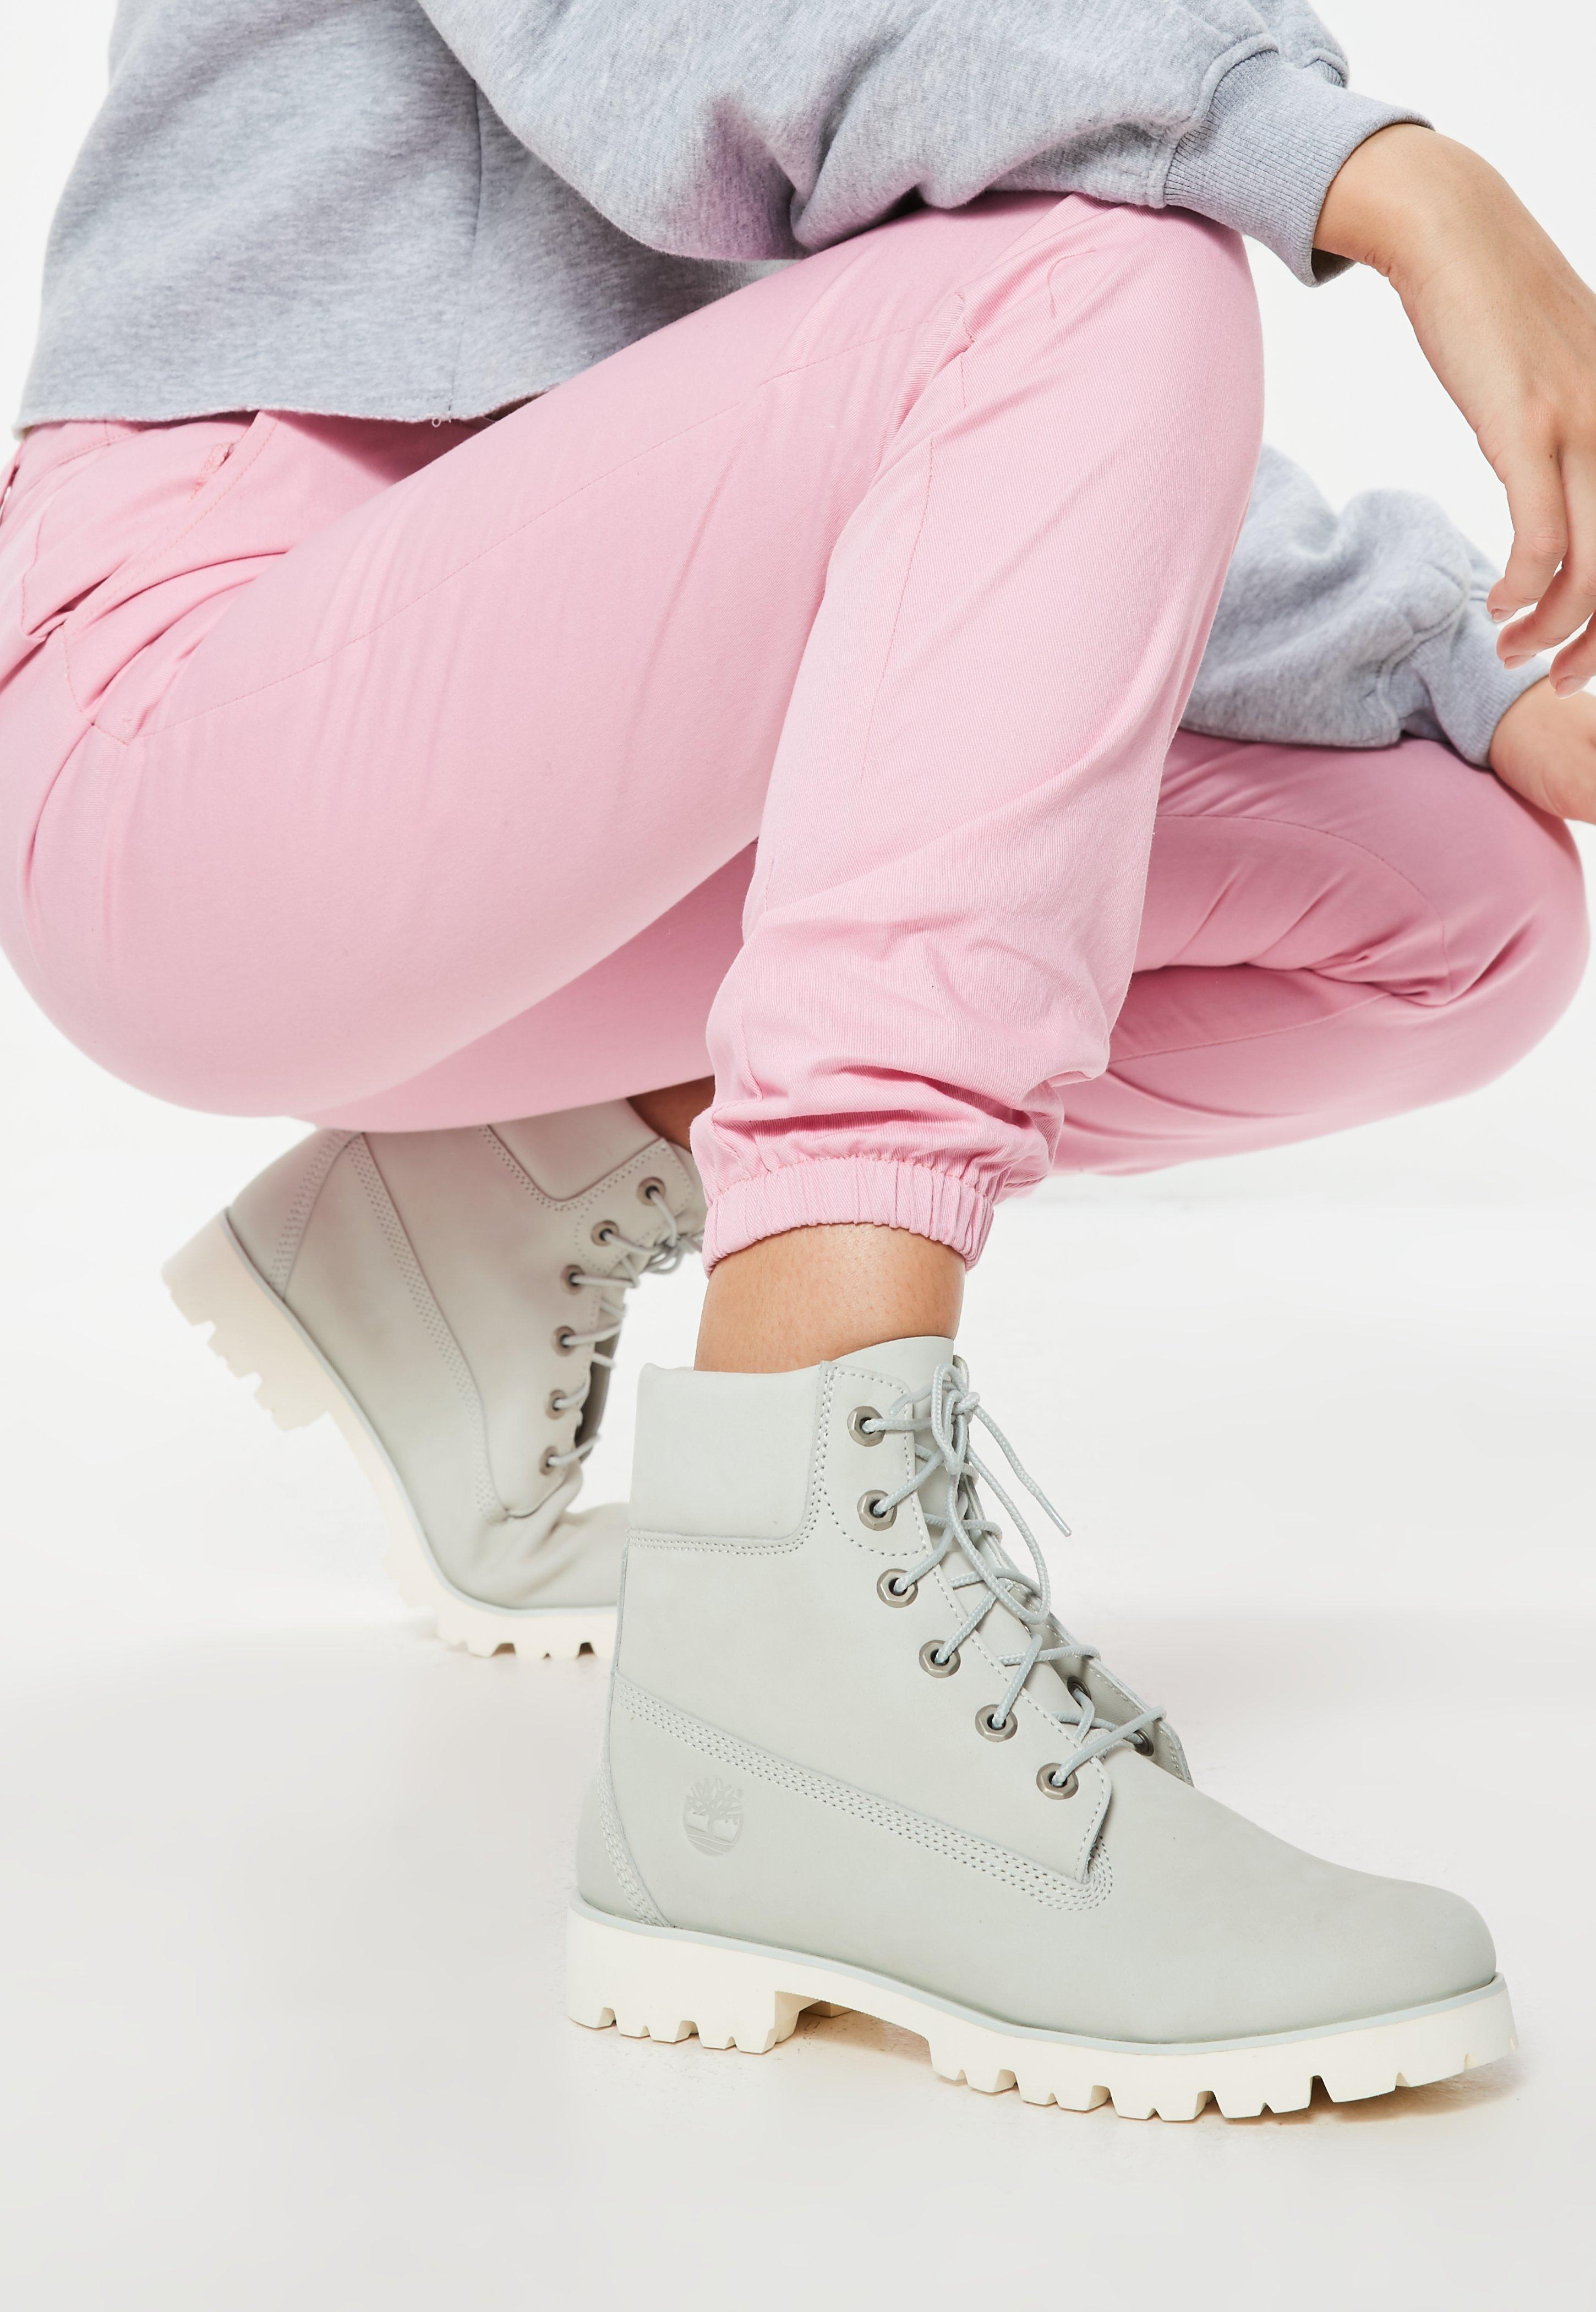 Lyst - Missguided Timberland Blue Flower Nubuck Heritage Lite 6 Inch ... 510474051a